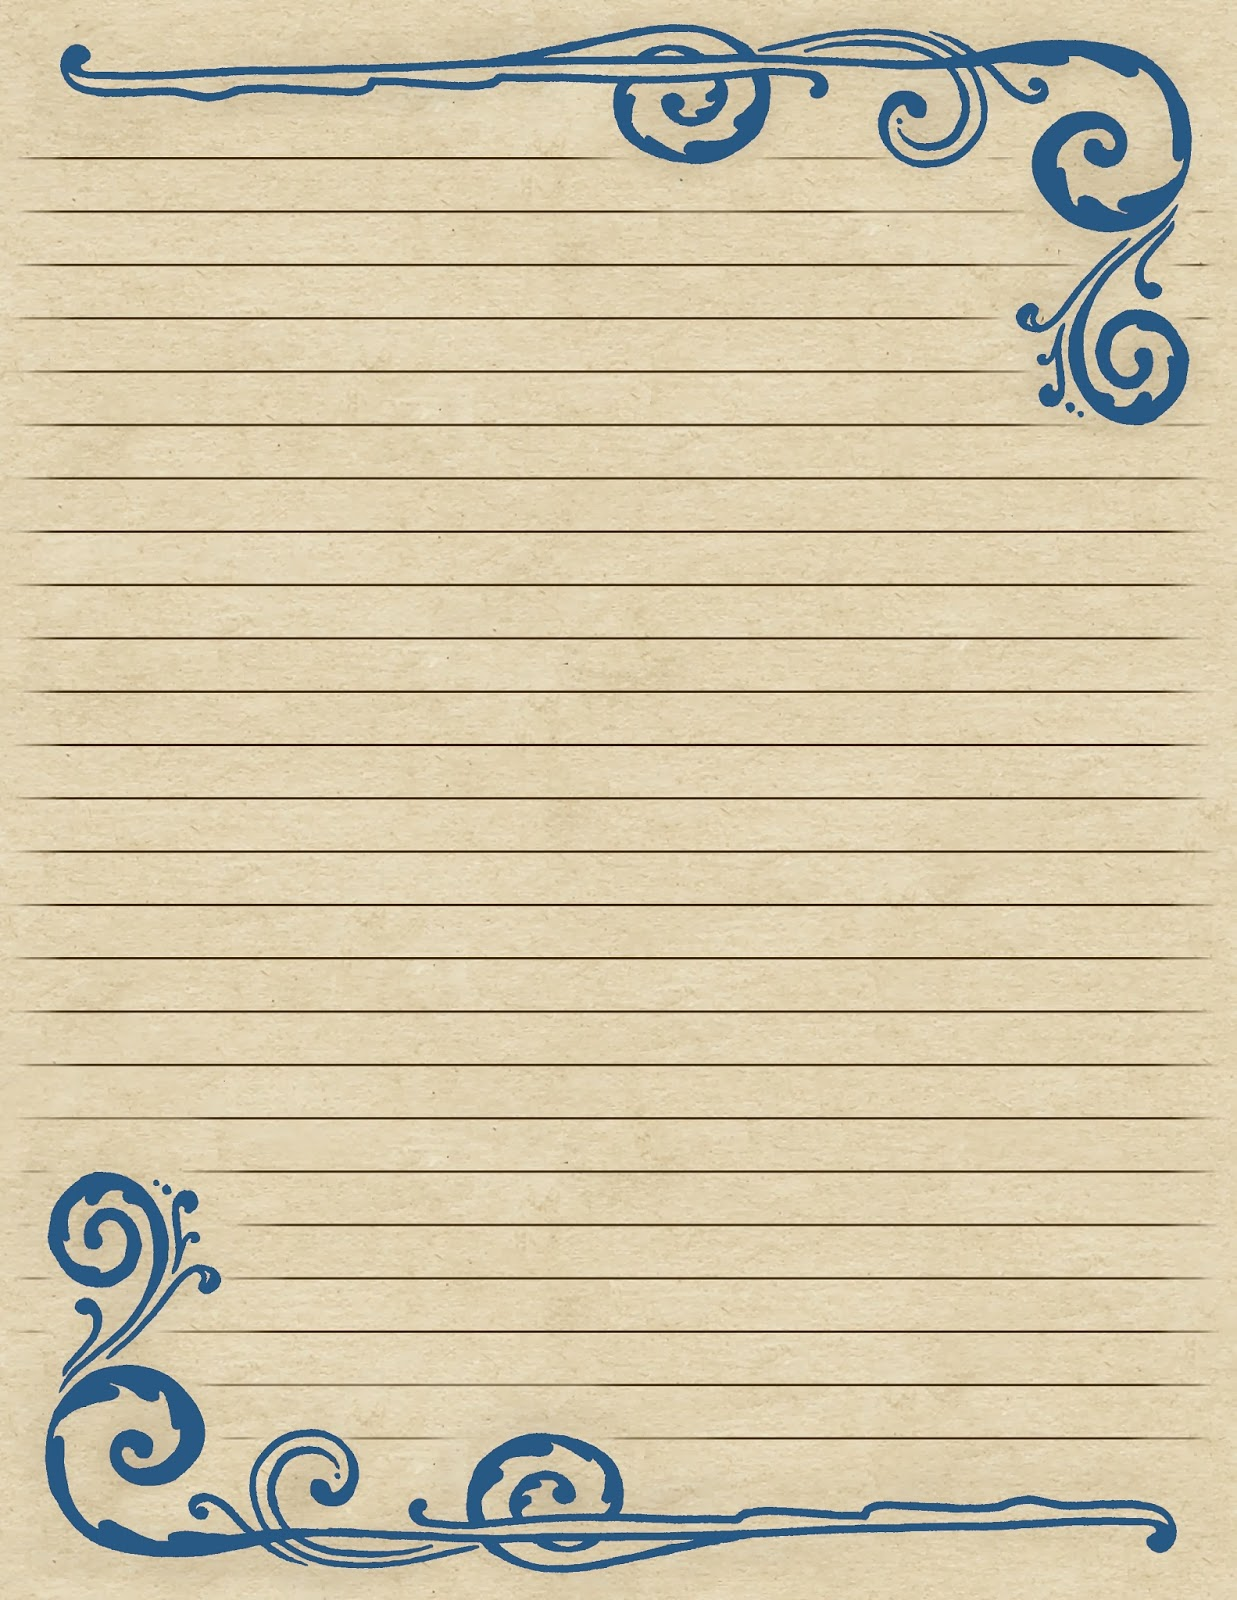 Editable Lined Paper bridal party list template sample internal – Lined Paper Word Template